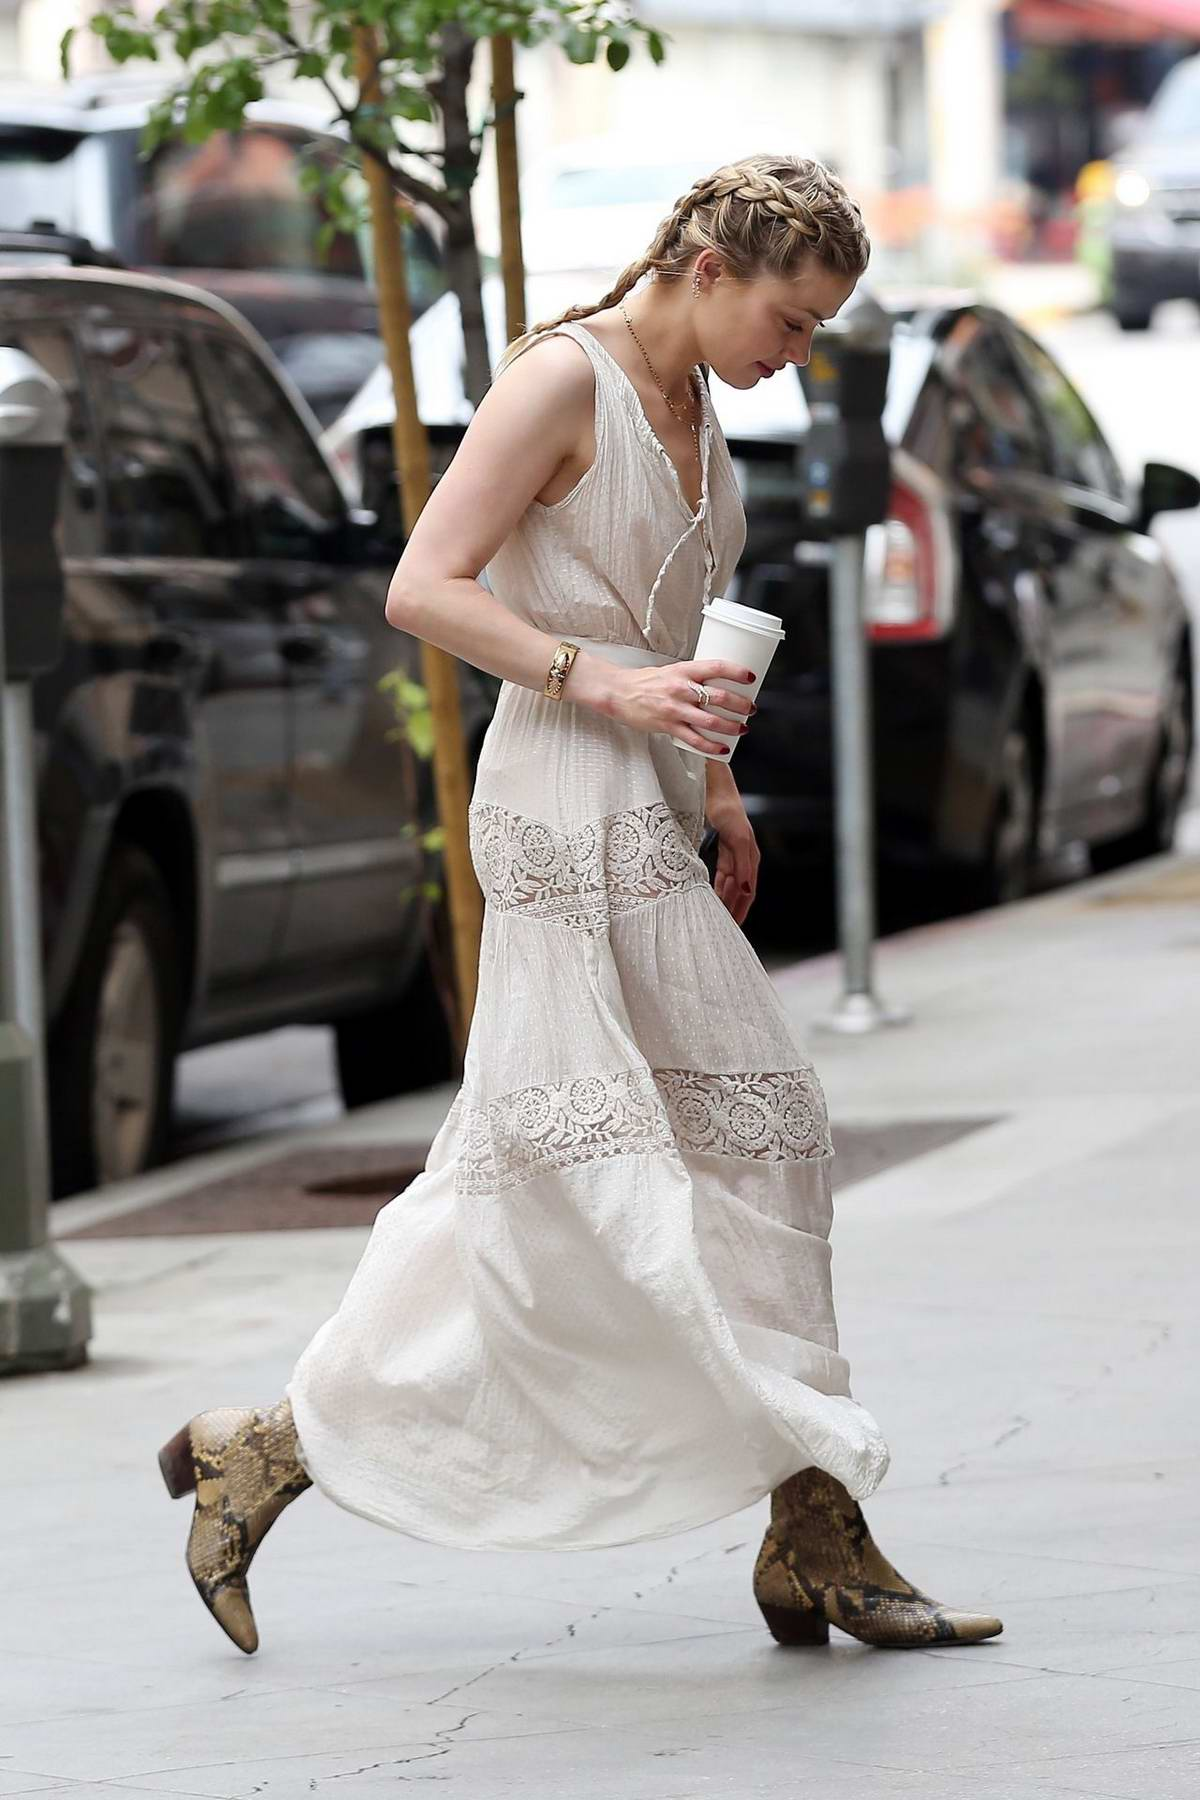 Amber Heard Steps Out In A White Maxi Dress For A Business Meeting